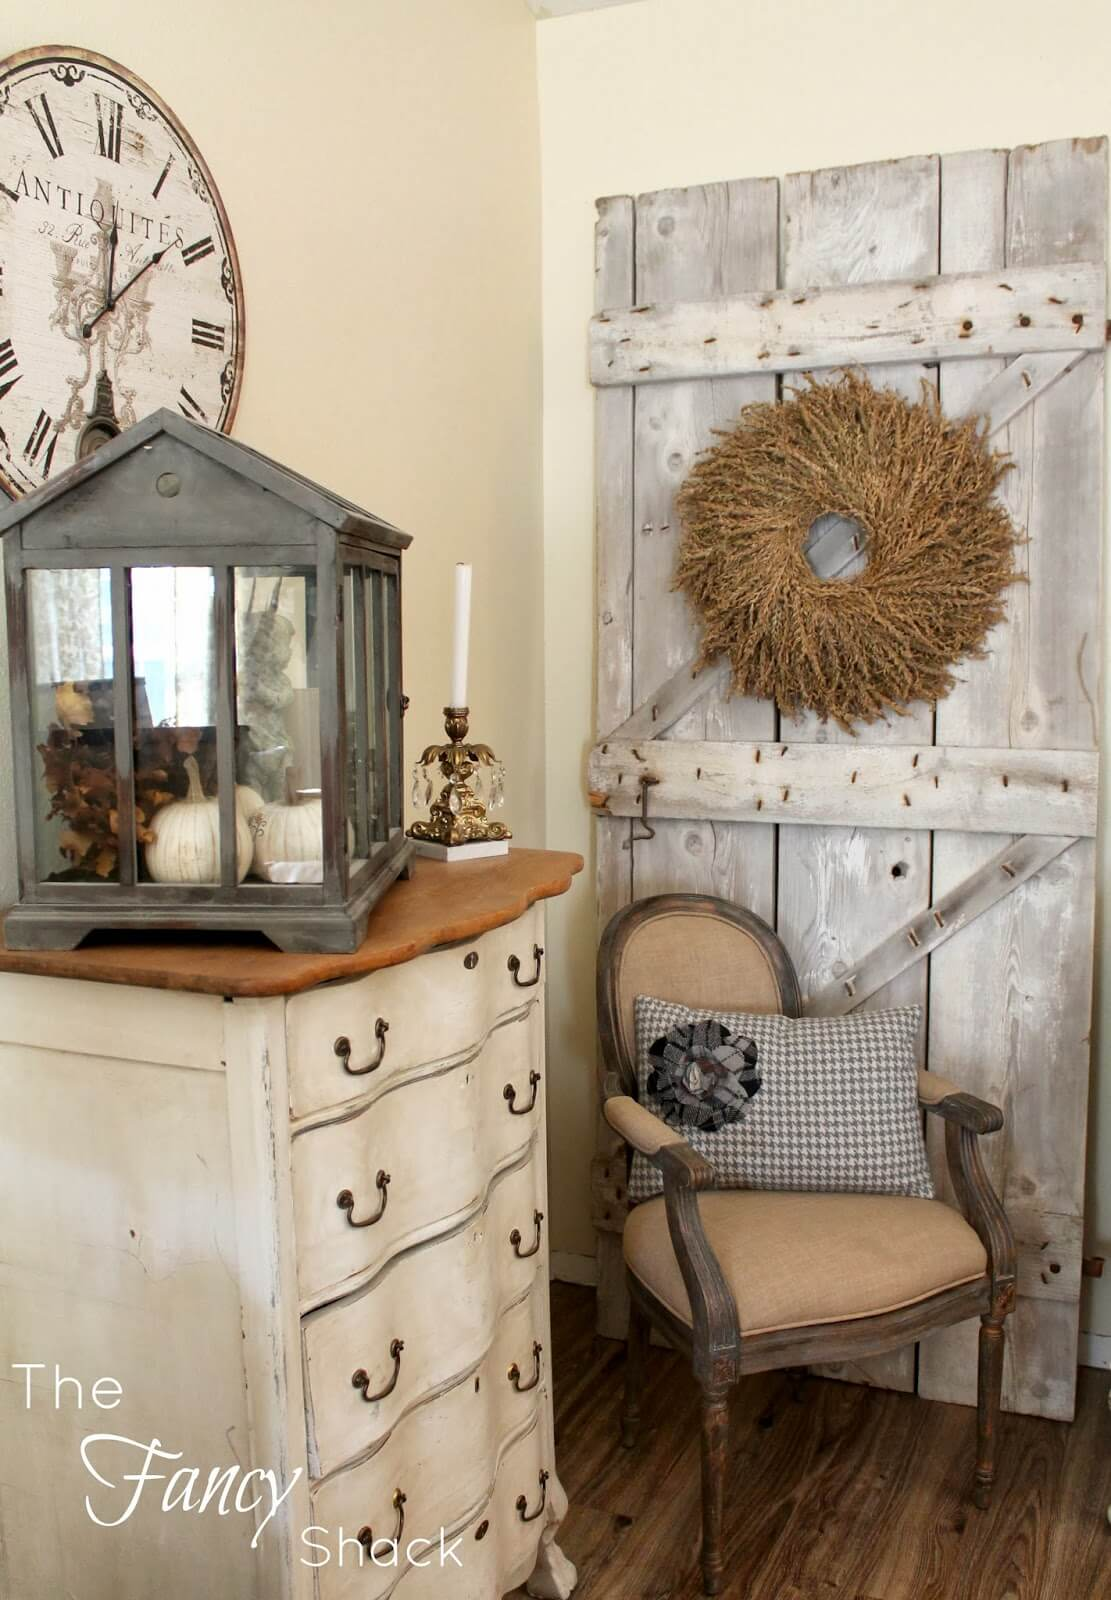 A Birdhouse Assemblage and Barnwood Door